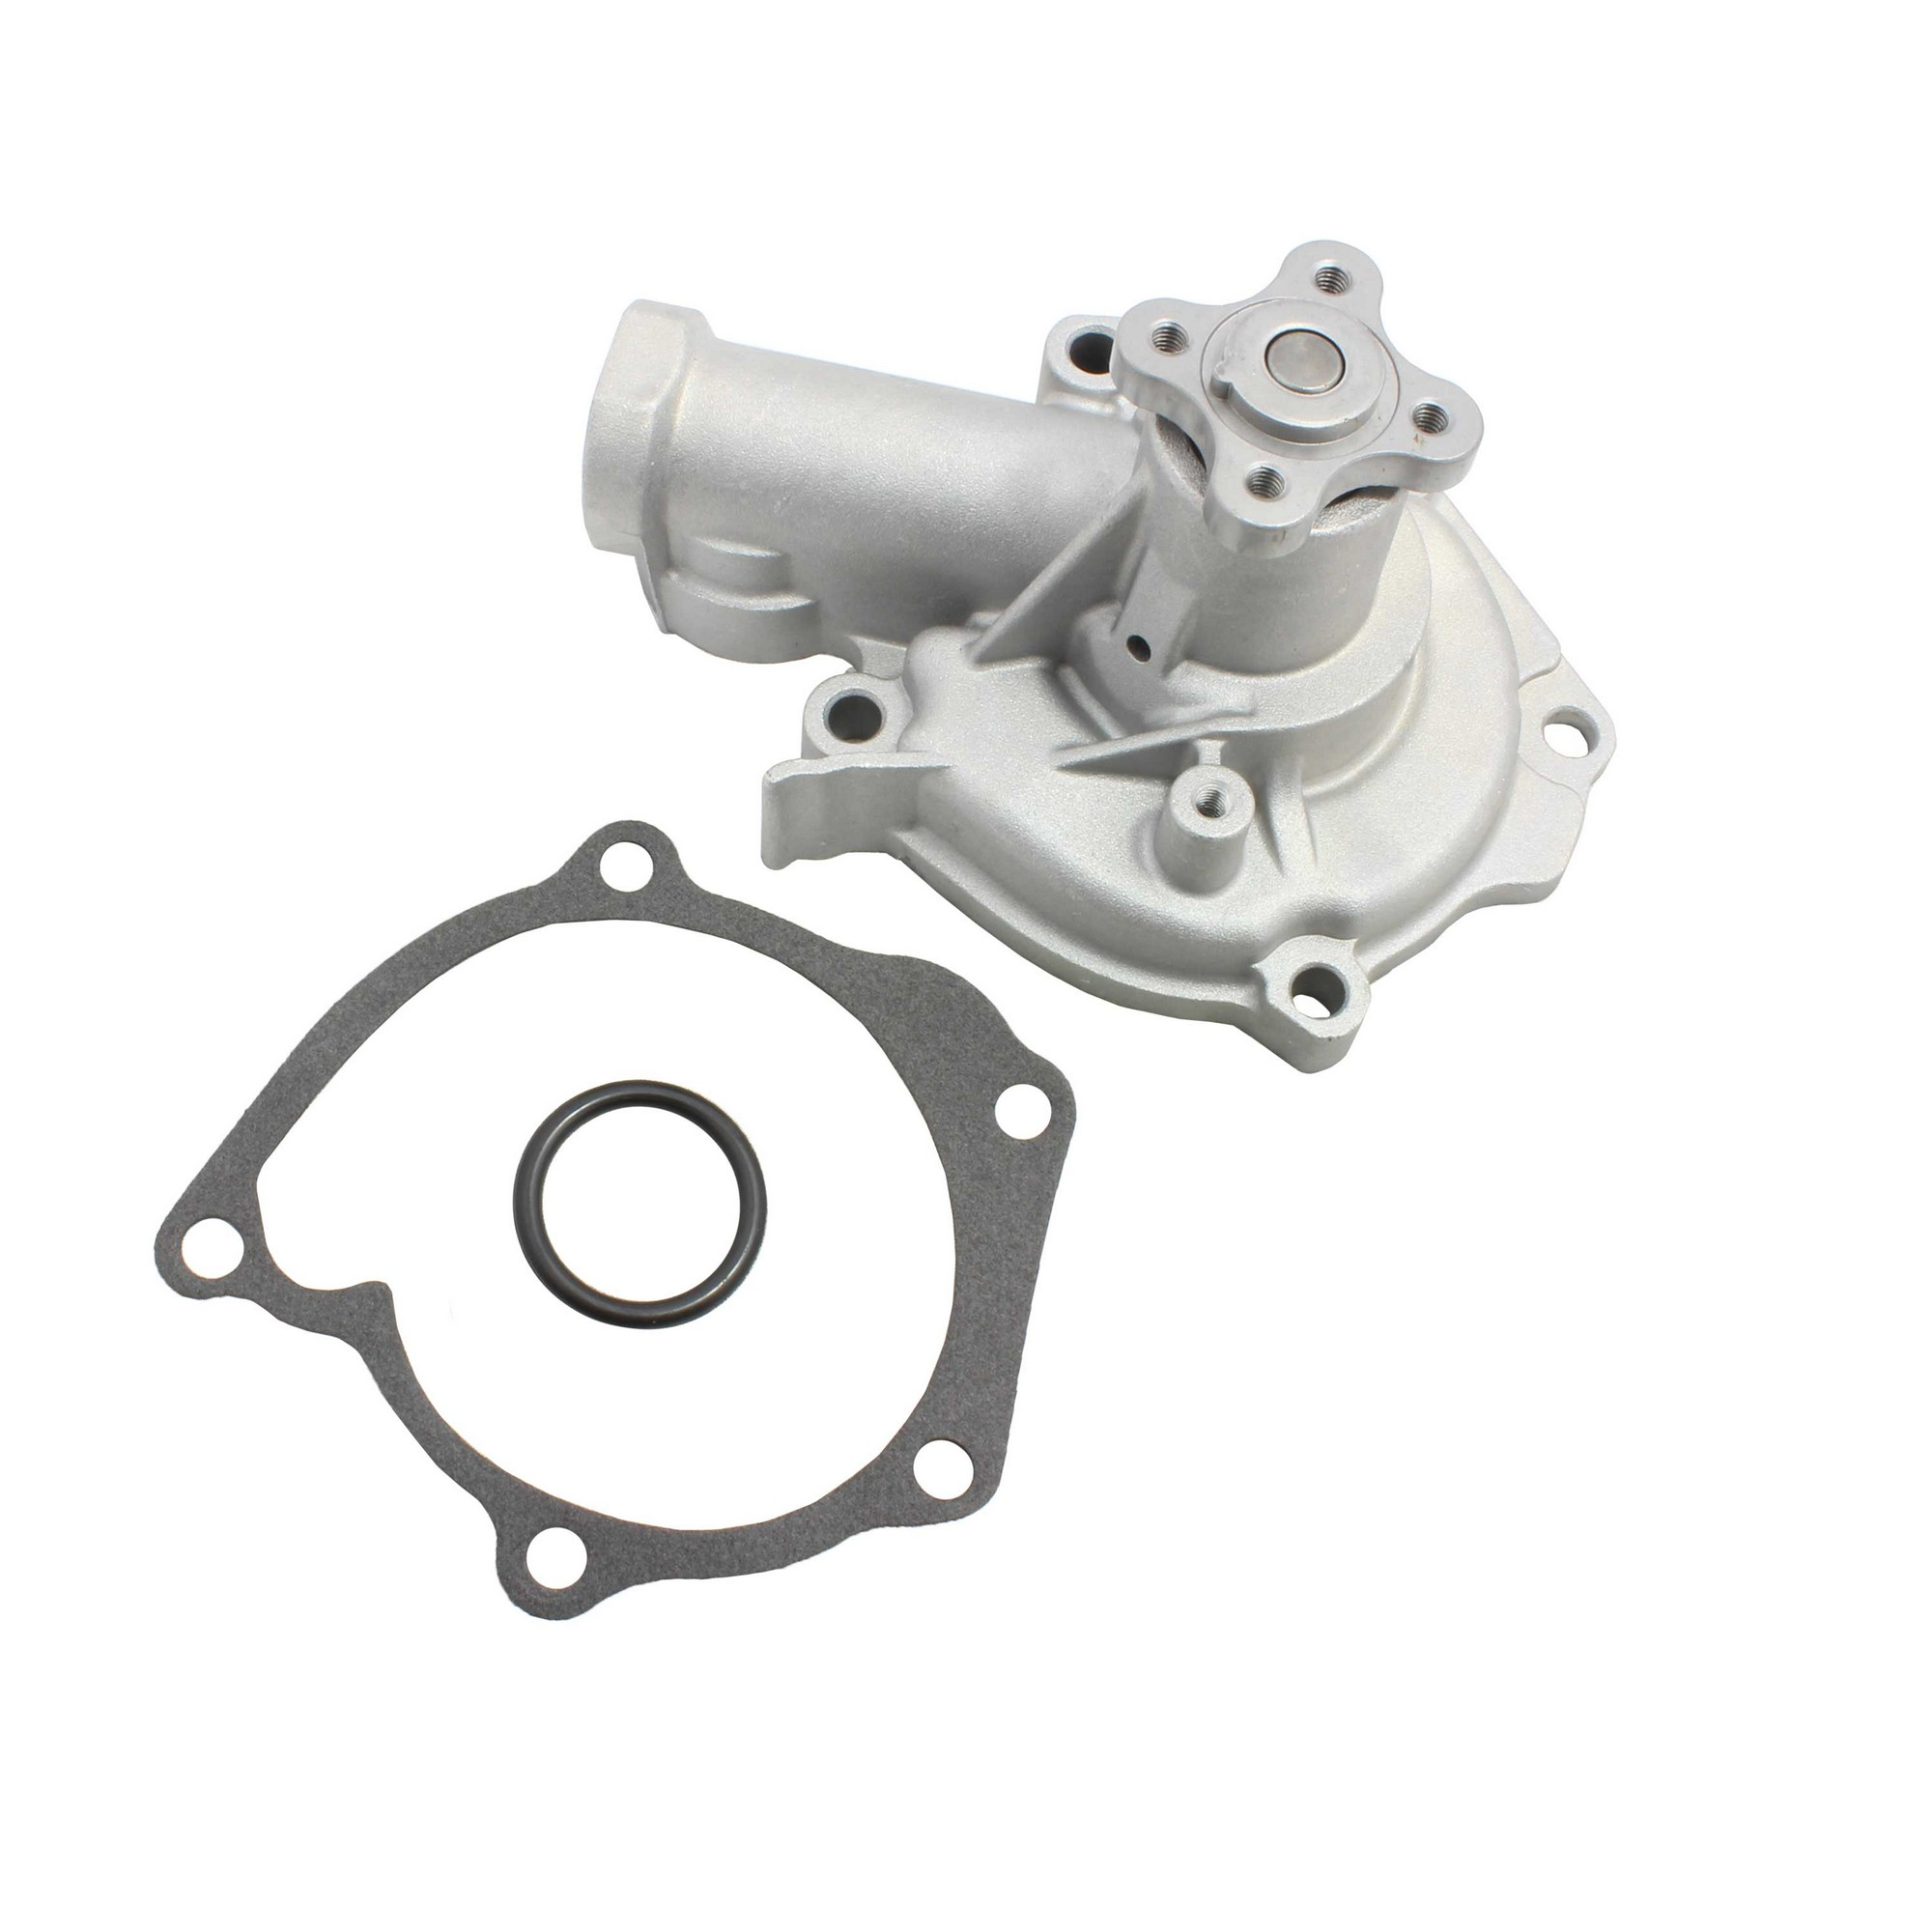 Water Pump For 2001-2006 Hyundai Santa Fe Kia Optima Mechanical With Gasket